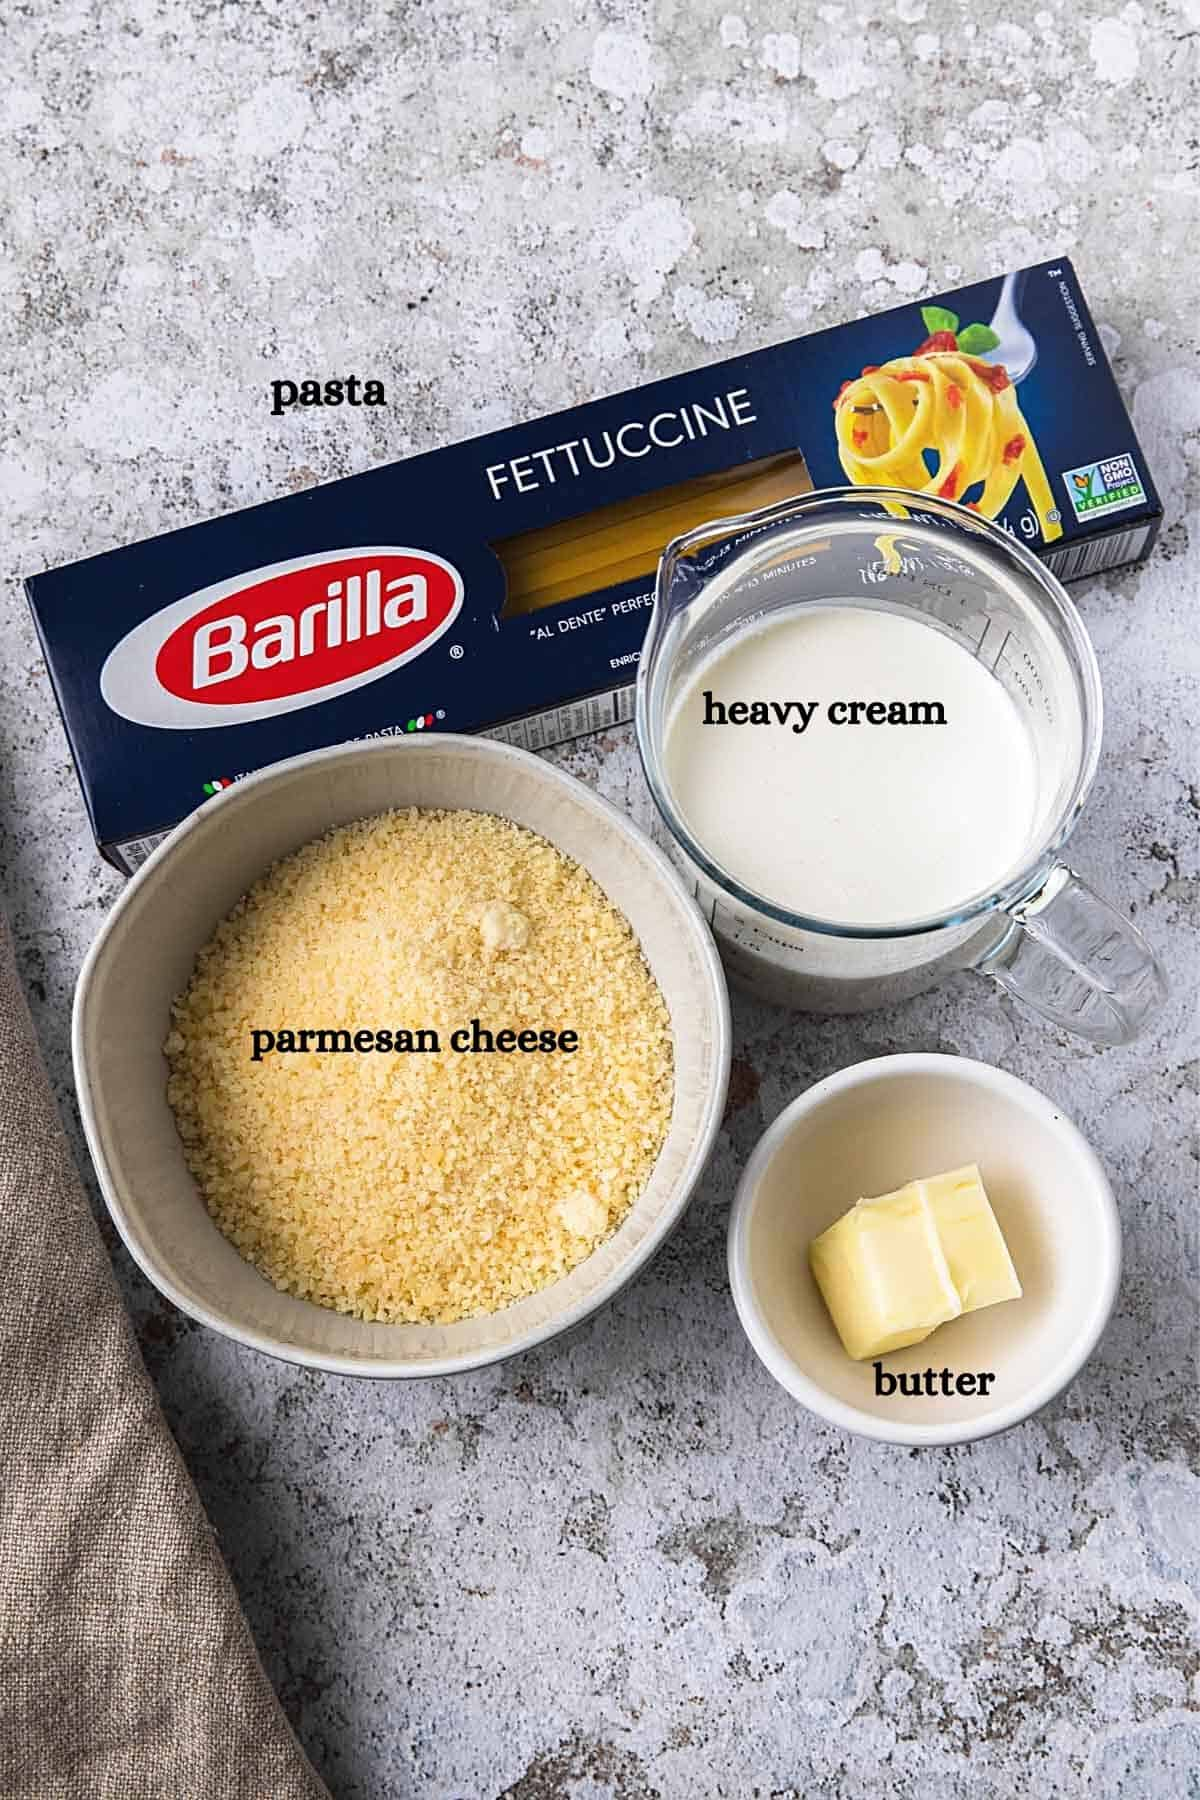 ingredients with lables